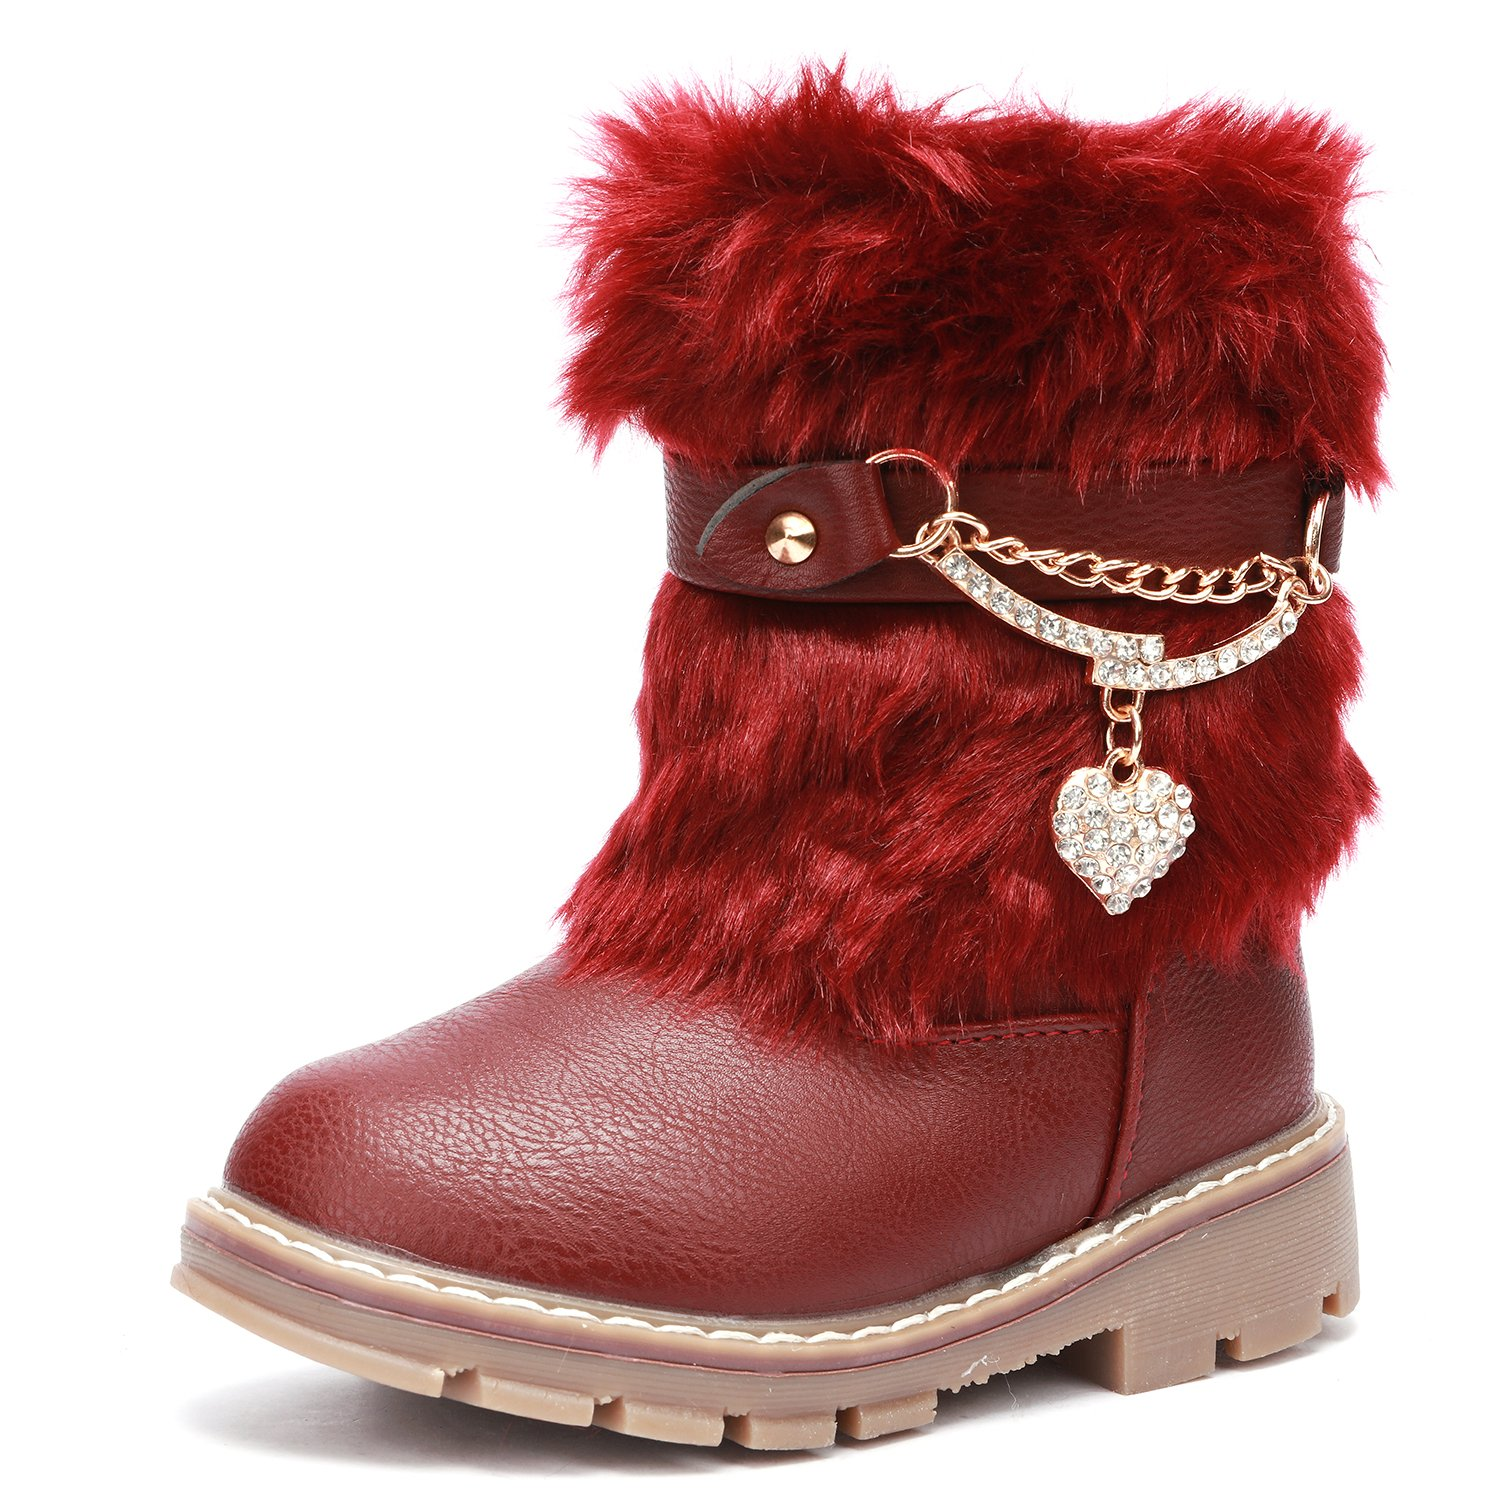 UBELLA Toddler Girls Rhinestone Heart Side Zipper Warm Winter Fur Snow Boots